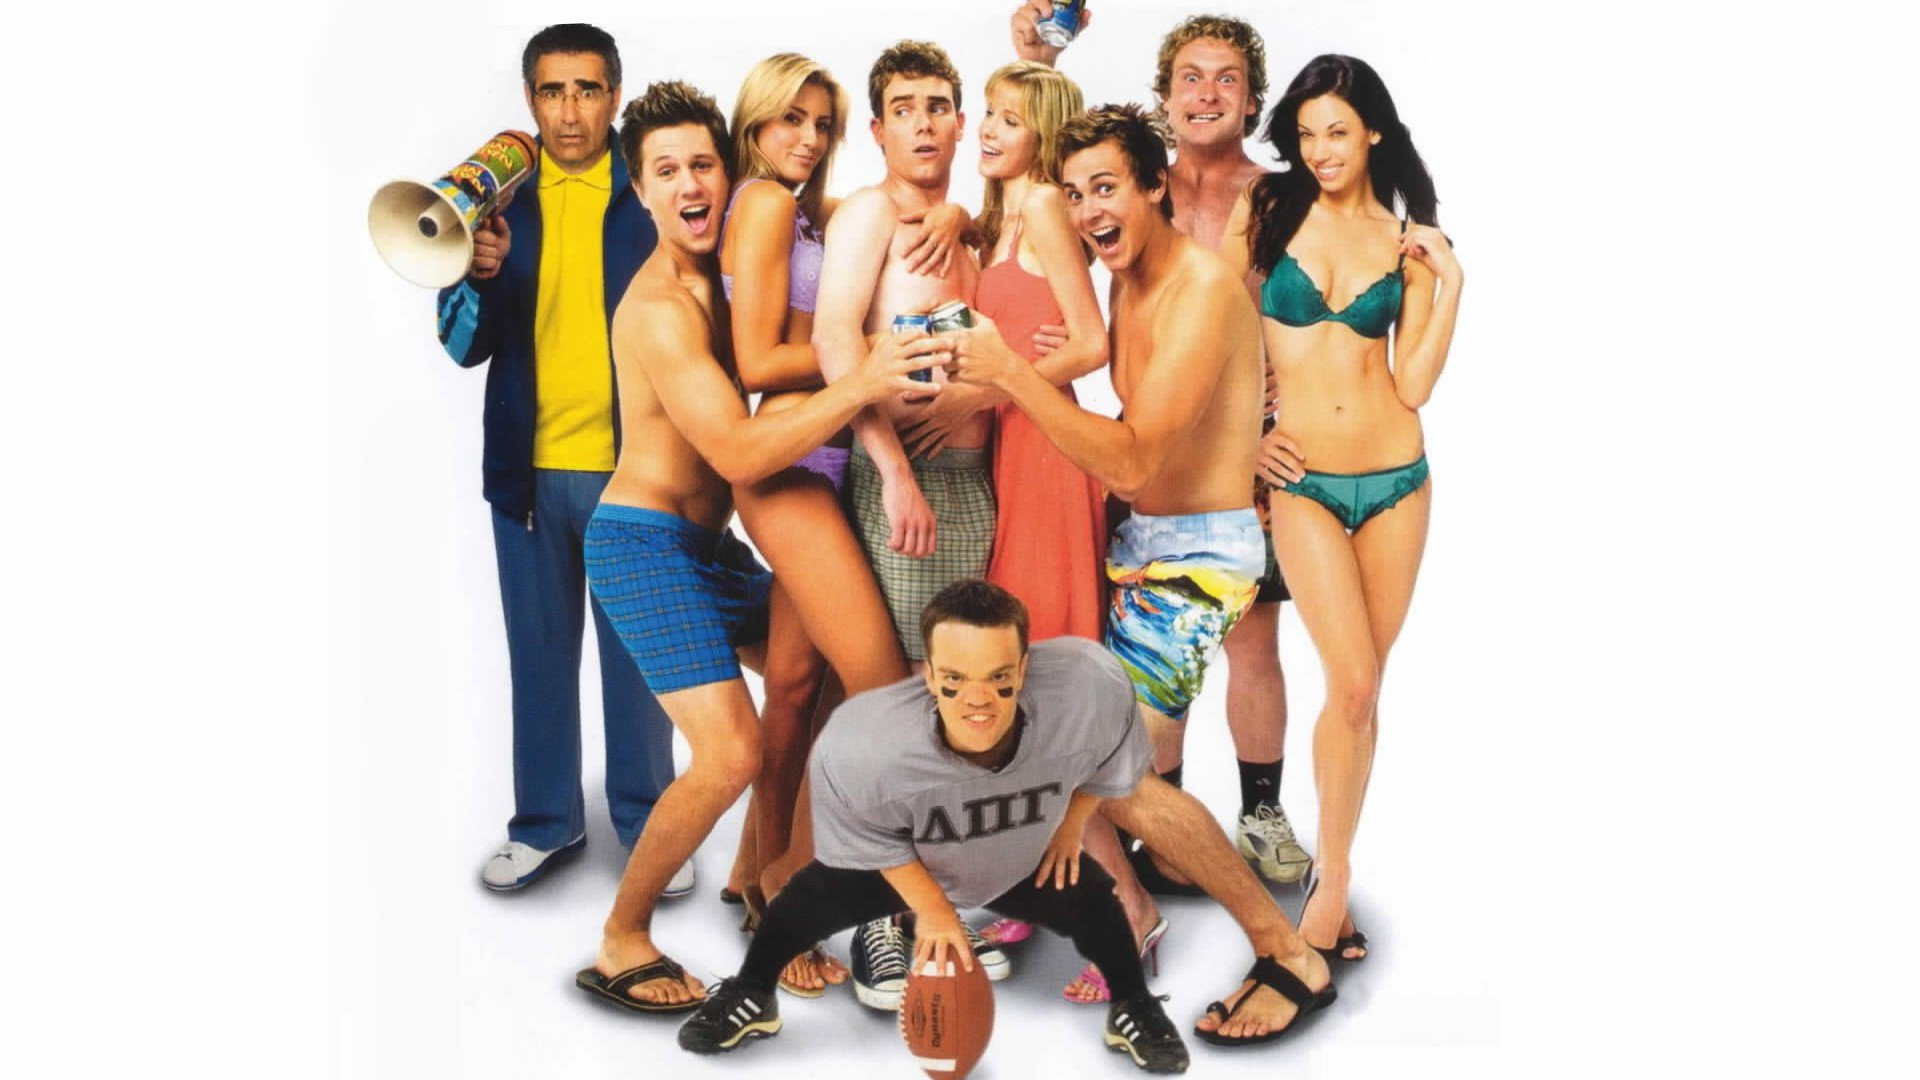 American pie presents the naked mile original picture dvd, music media, cds, dvds other media on carousell